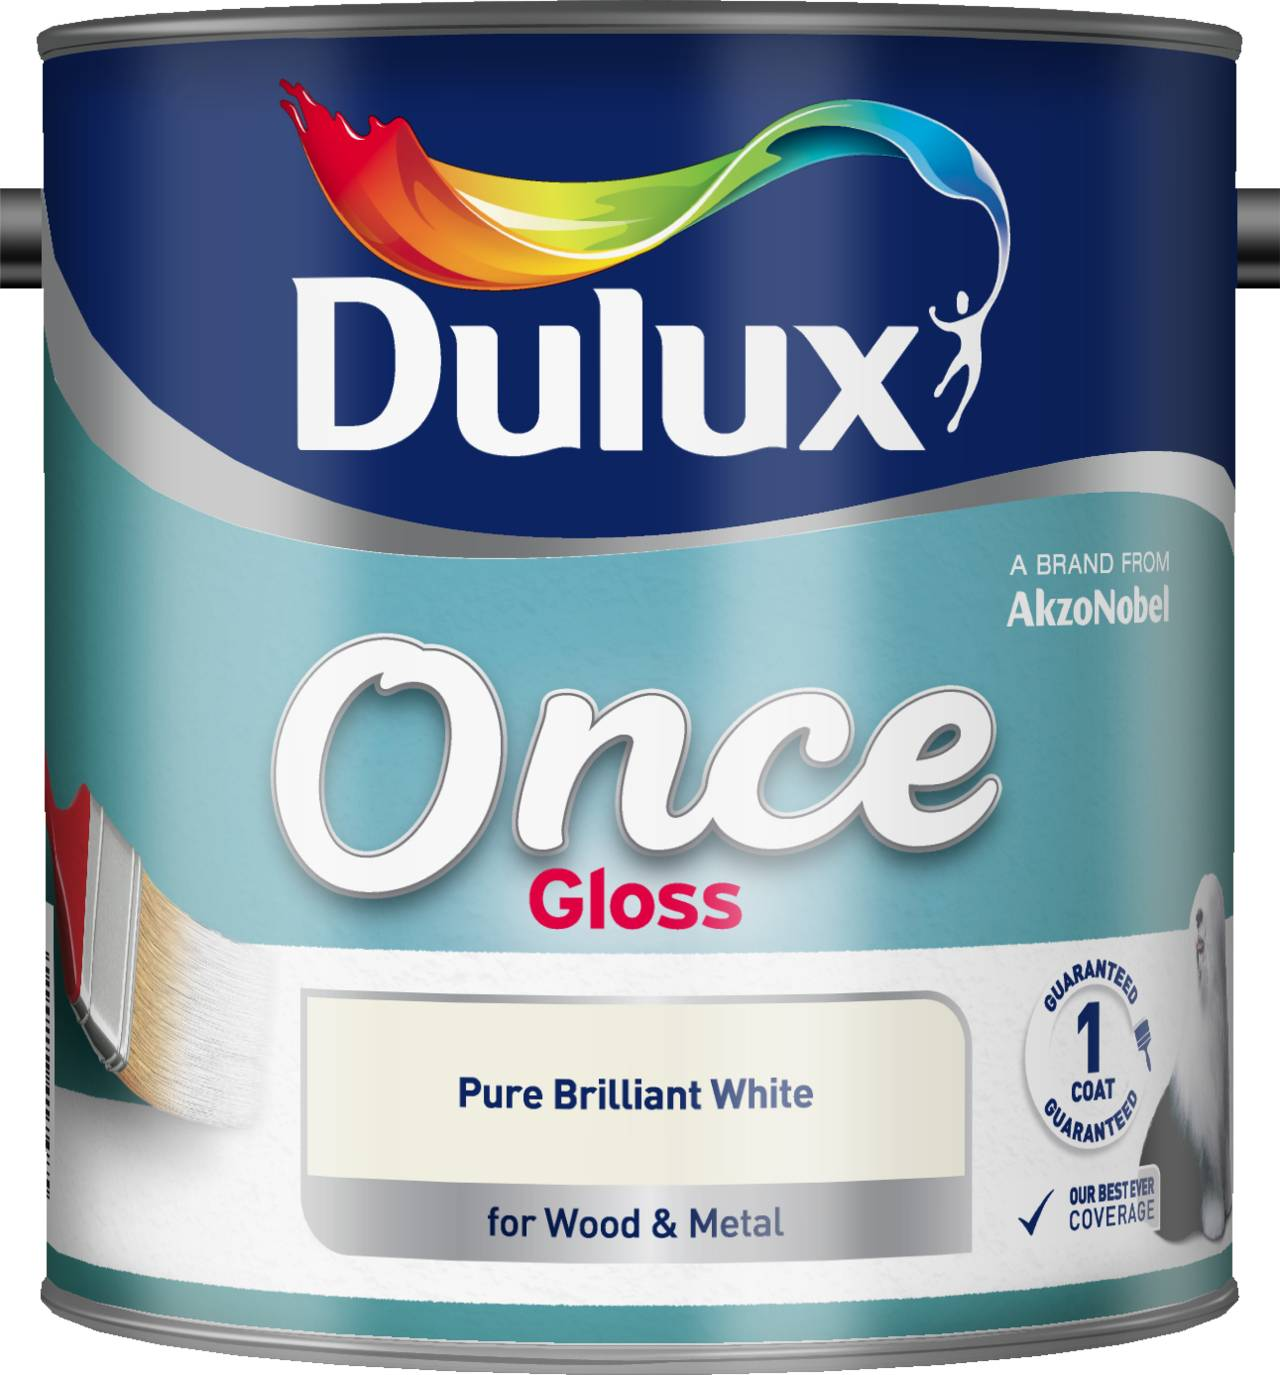 Image of Dulux Once Gloss Paint – Brilliant White, 2.5L